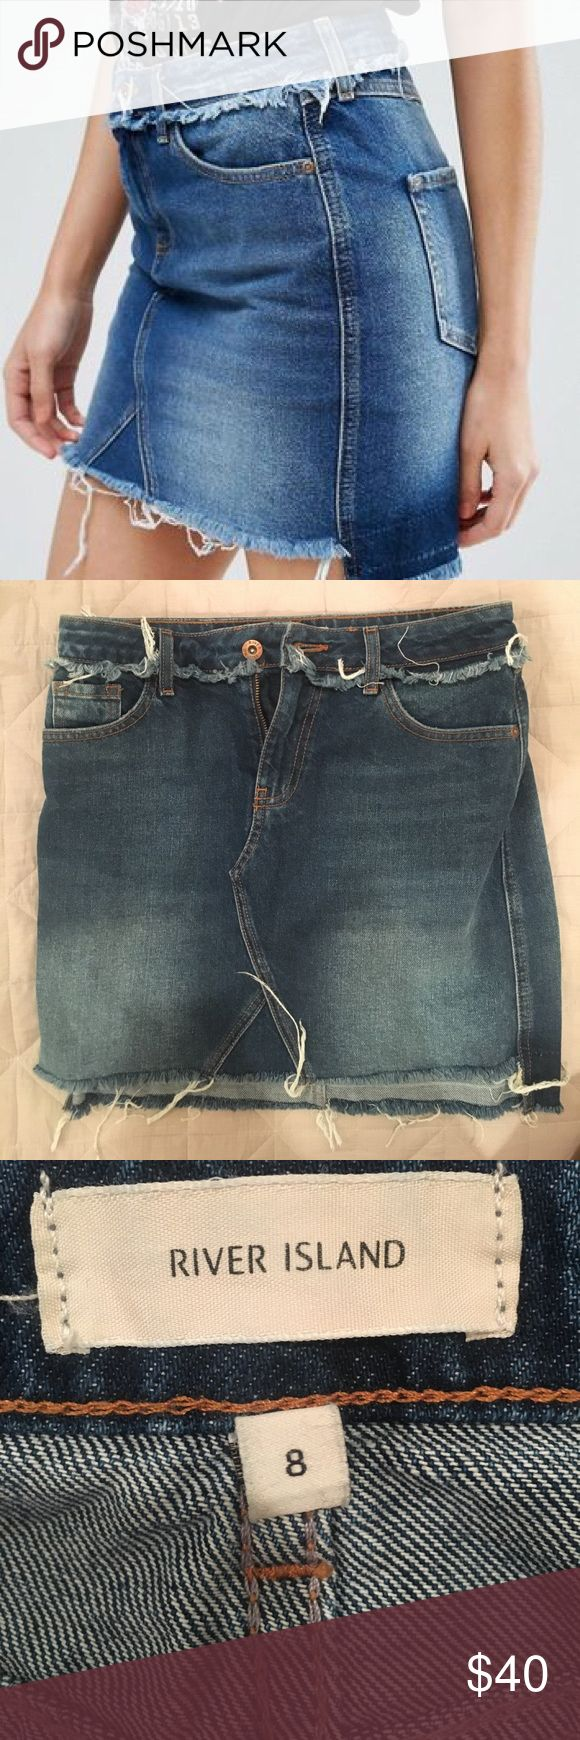 River island denim frayed skirt Size US 4. 8 on tag is UK size. Bought from asos. Never worn. Been hanging in my closet. Color is accurate the first picture . The lighting in my room made it look darker. River Island Skirts Mini